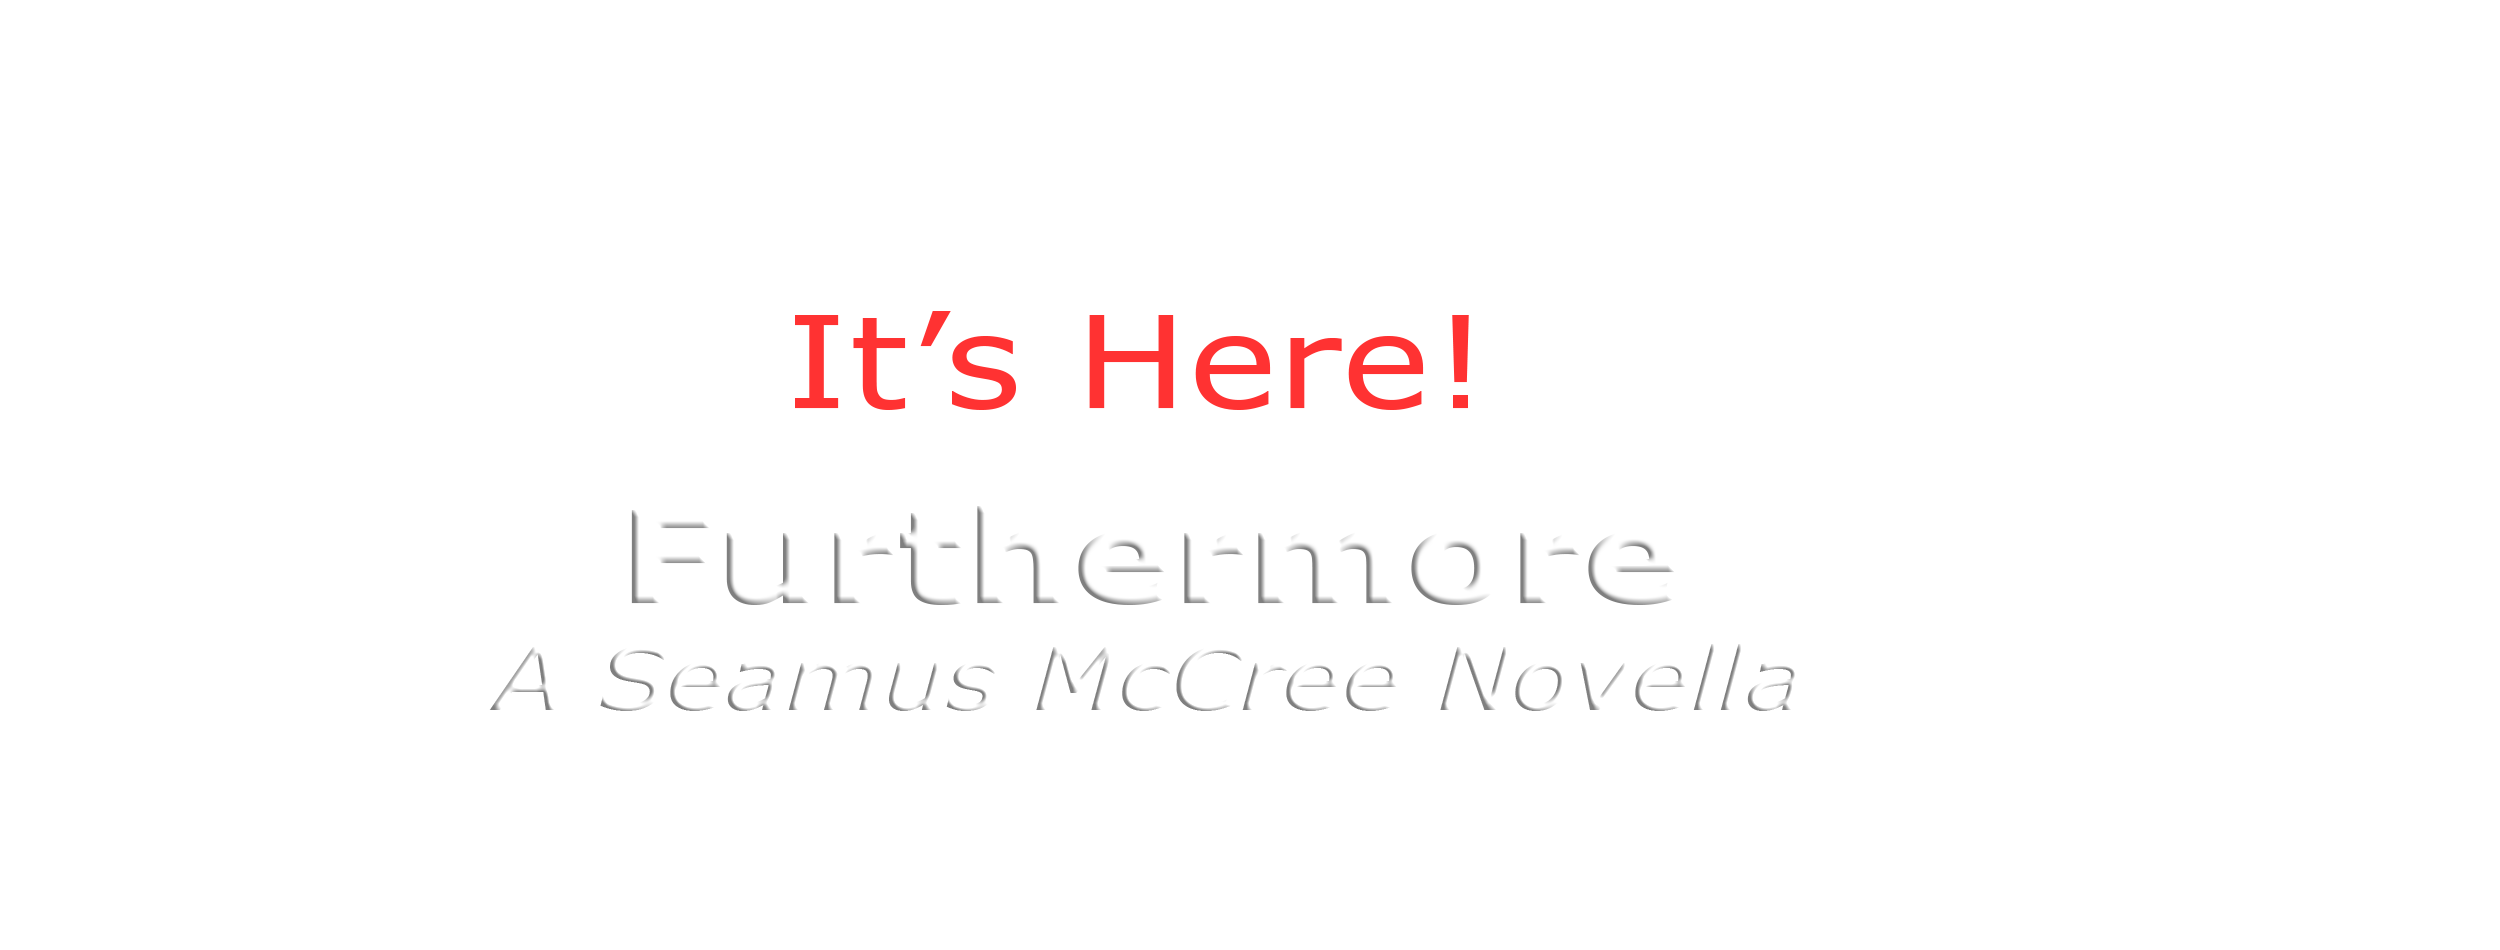 Furthermore released April 21. 2020